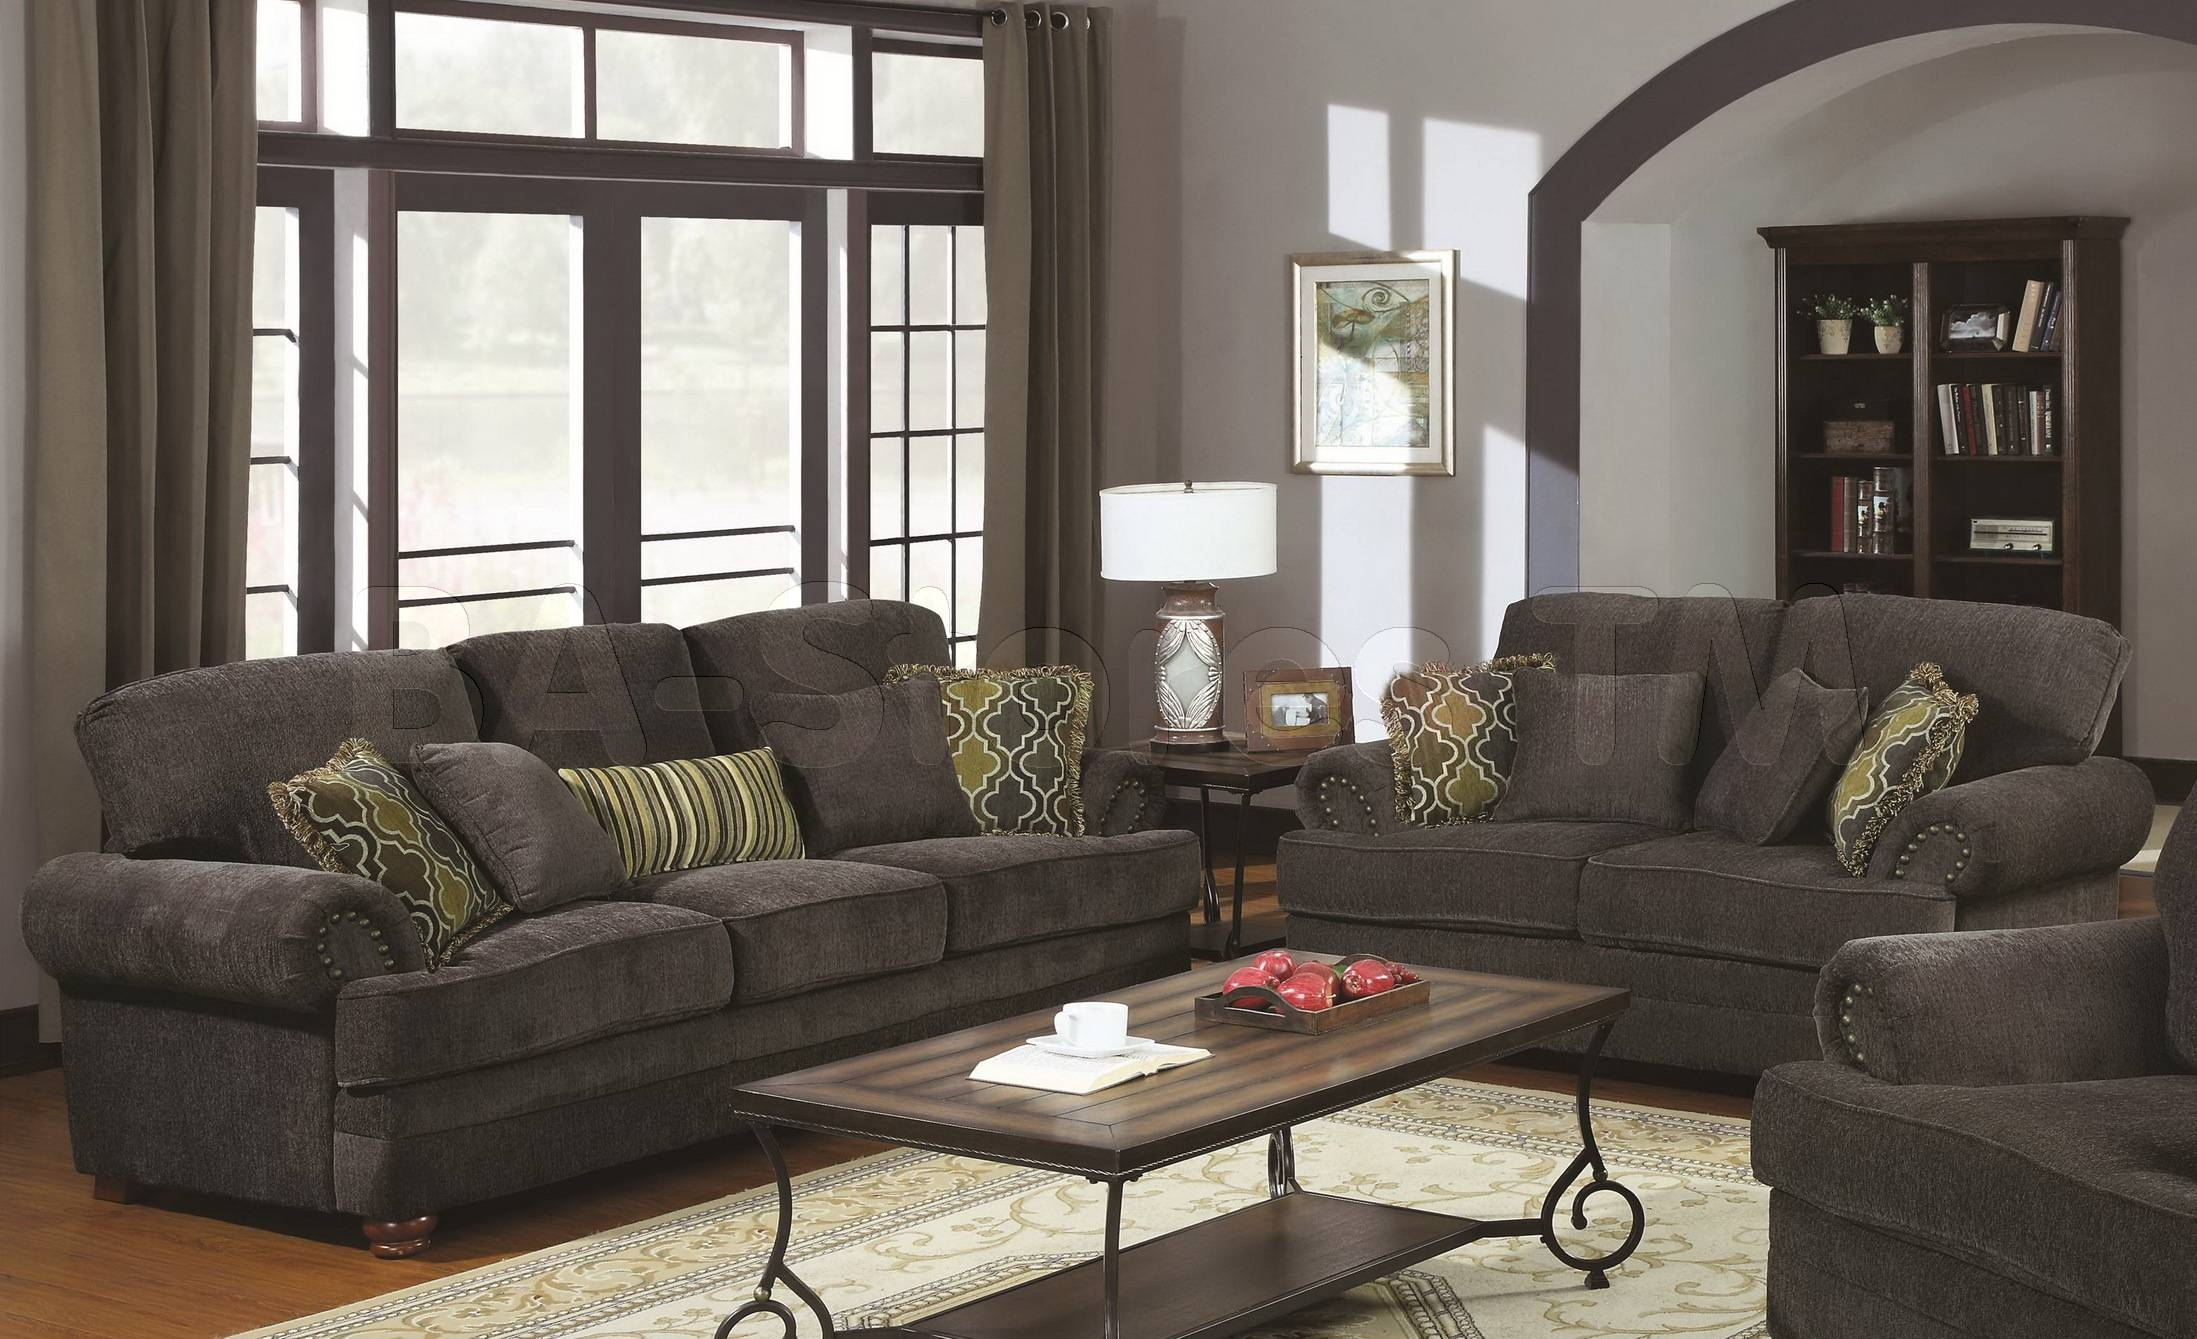 Chenille Sofas And Loveseats | Tehranmix Decoration With Sofas And Loveseats (View 2 of 30)